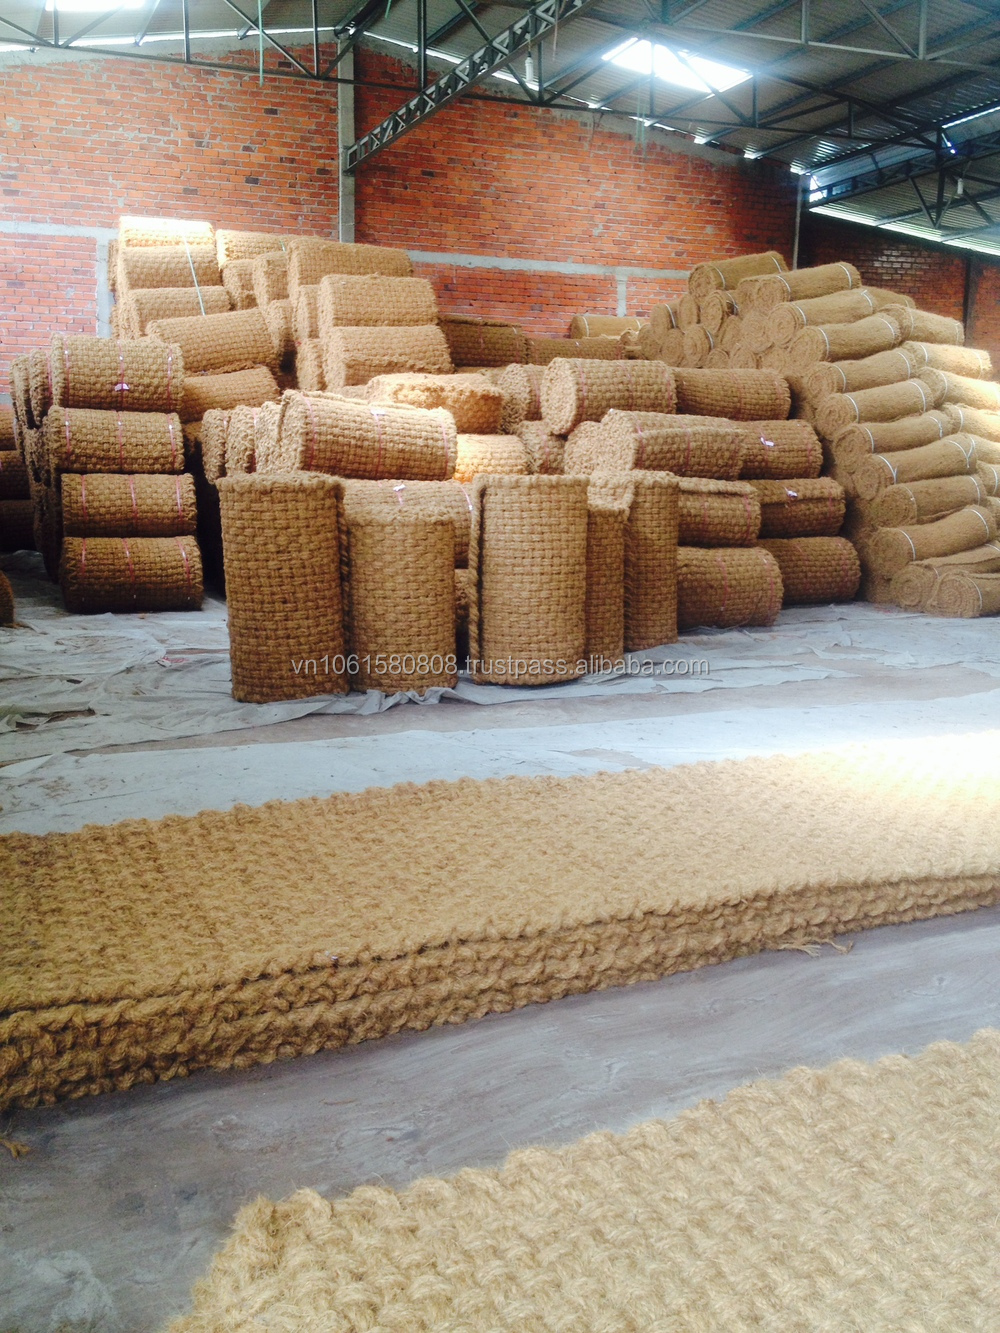 coir rope coconut fiber rope best price buy coir rope coir rope manufacturer coconut fiber. Black Bedroom Furniture Sets. Home Design Ideas